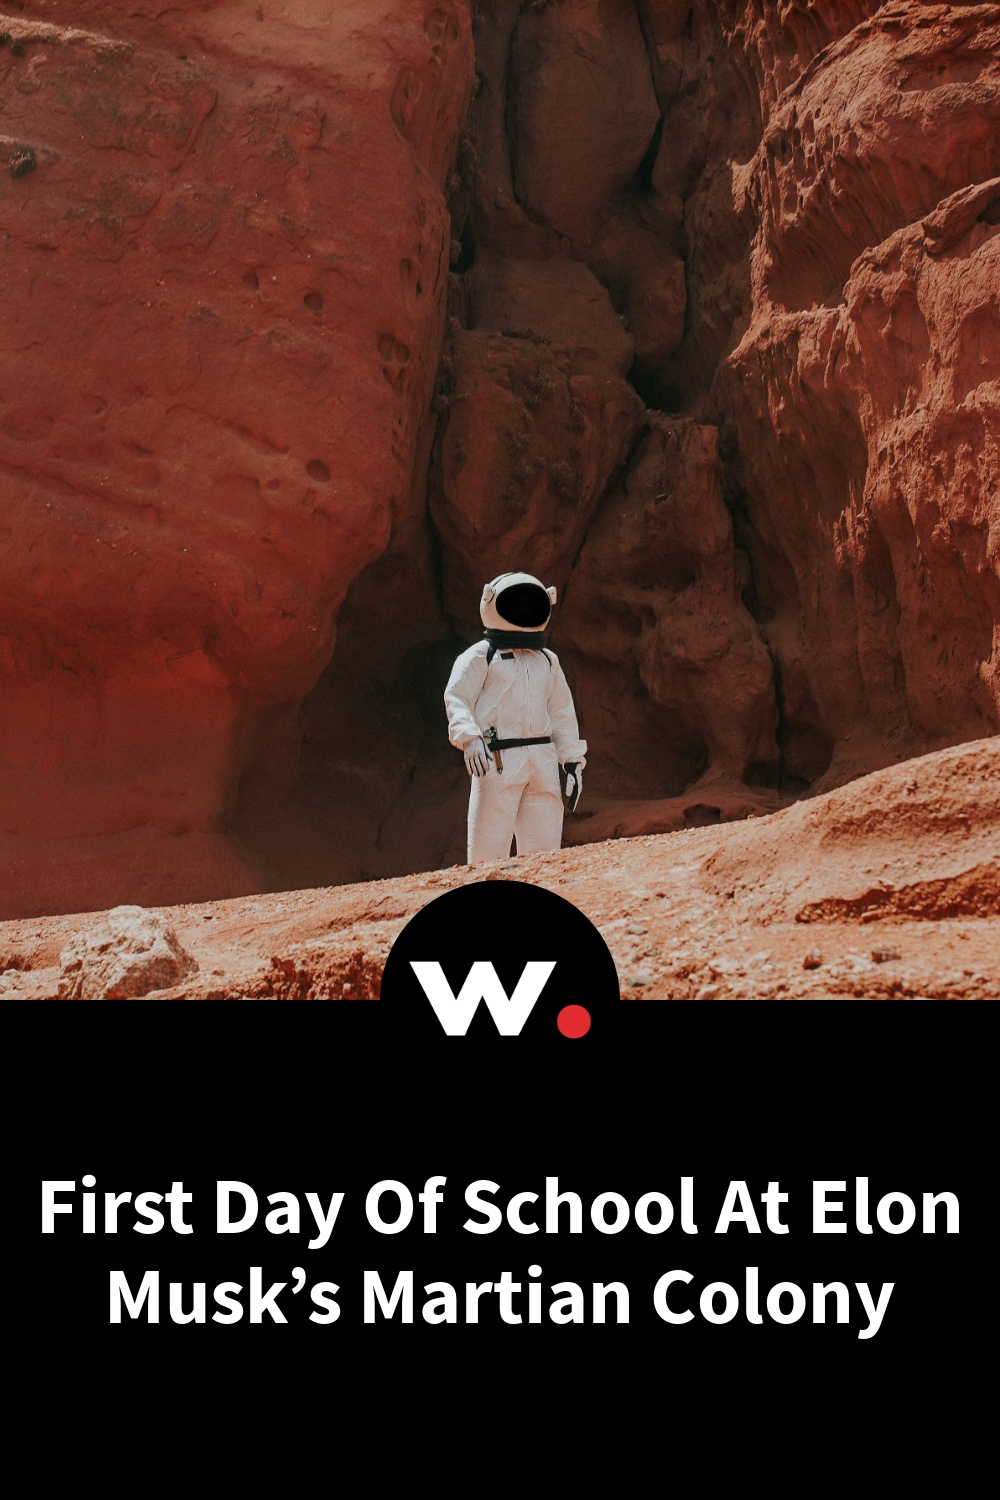 First Day Of School At Elon Musk's Martian Colony